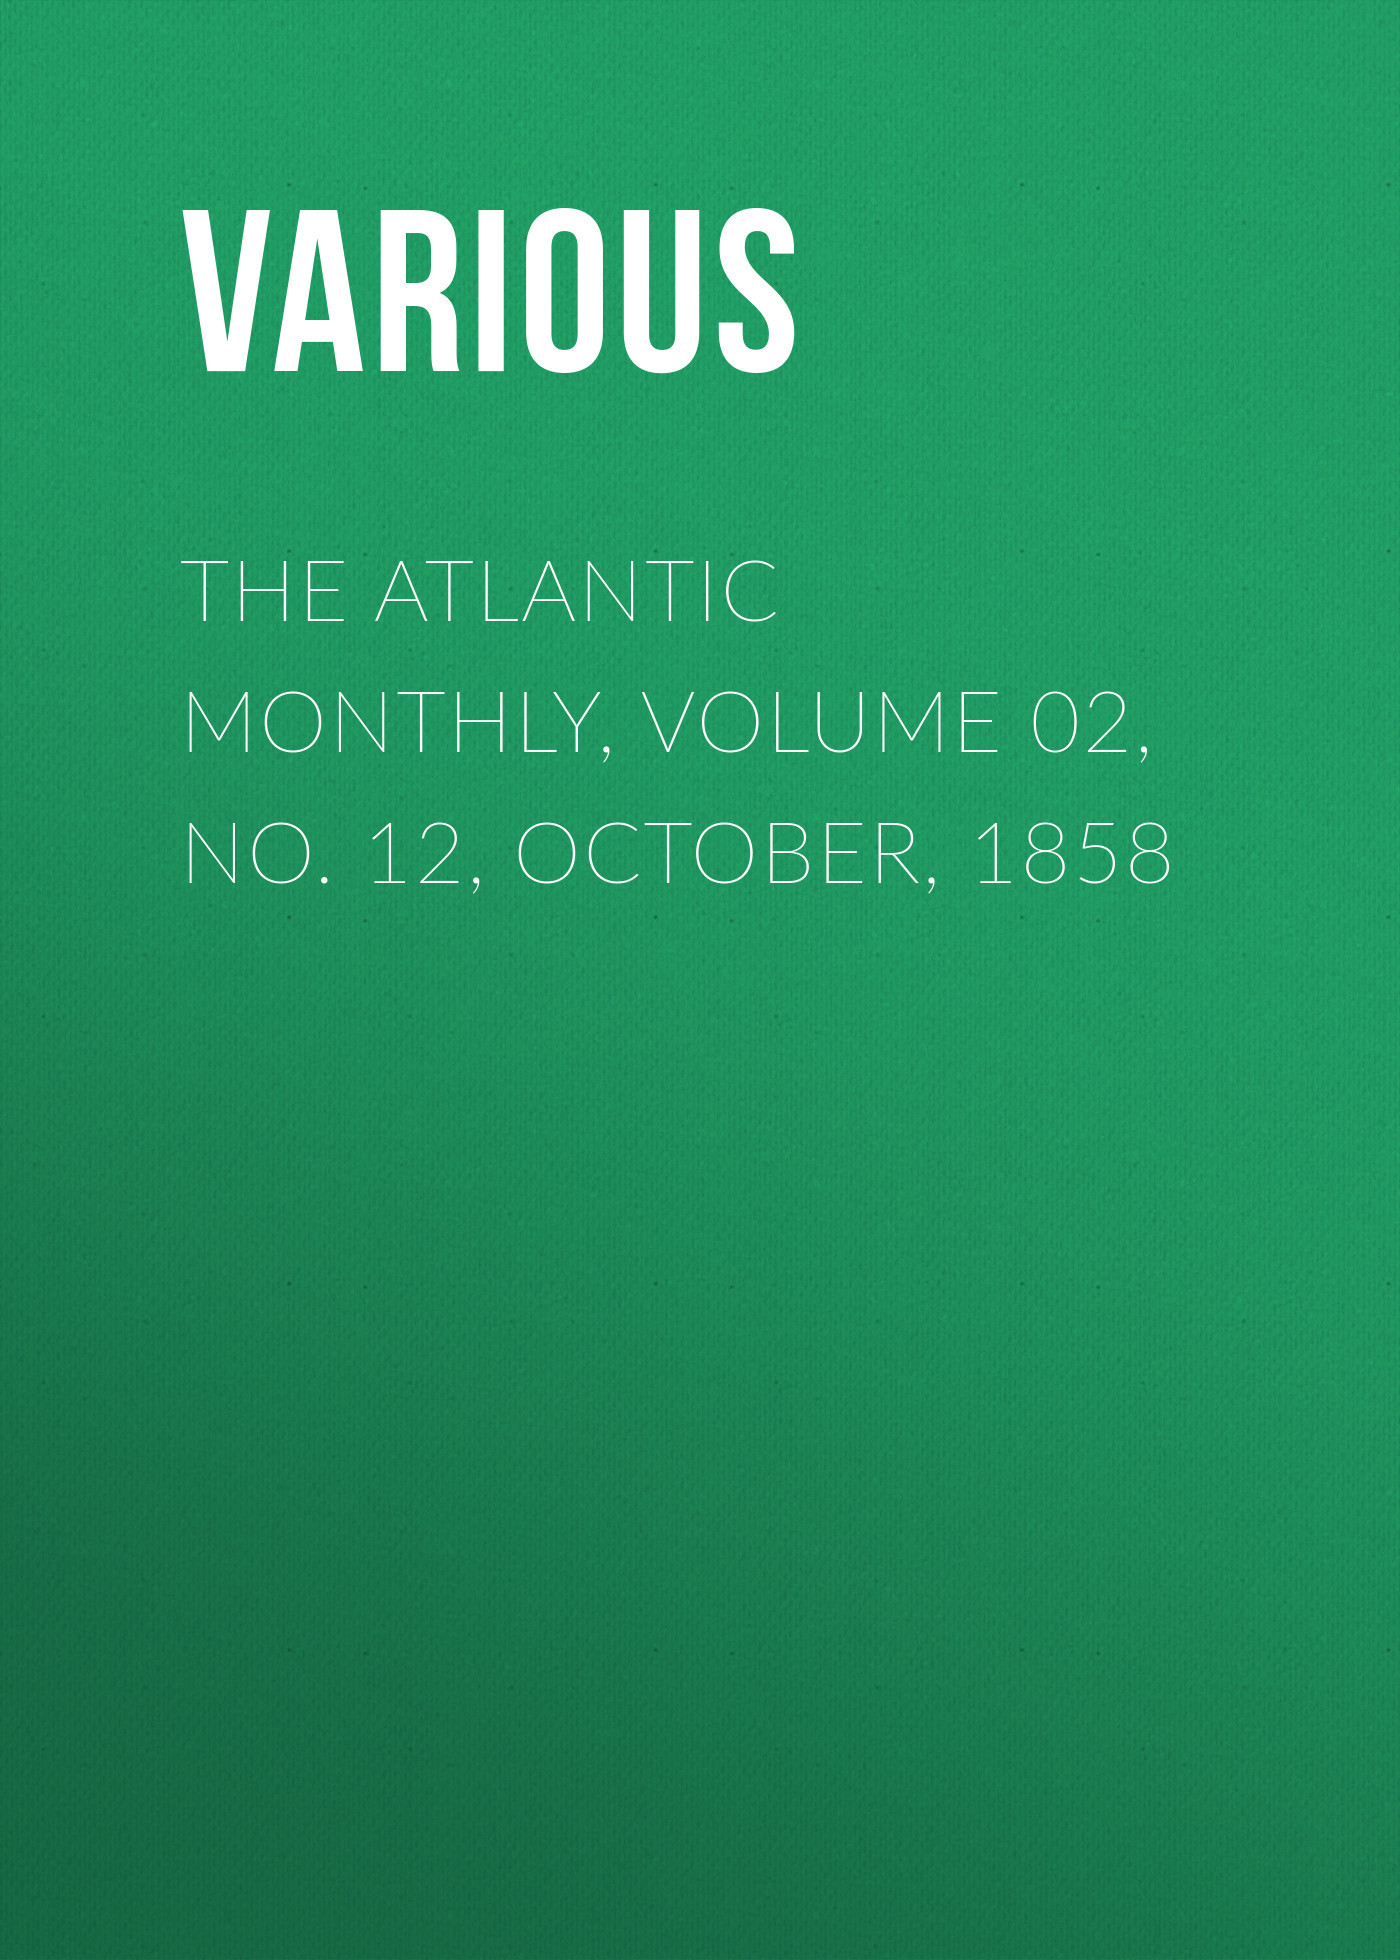 The Atlantic Monthly, Volume 02, No. 12, October, 1858